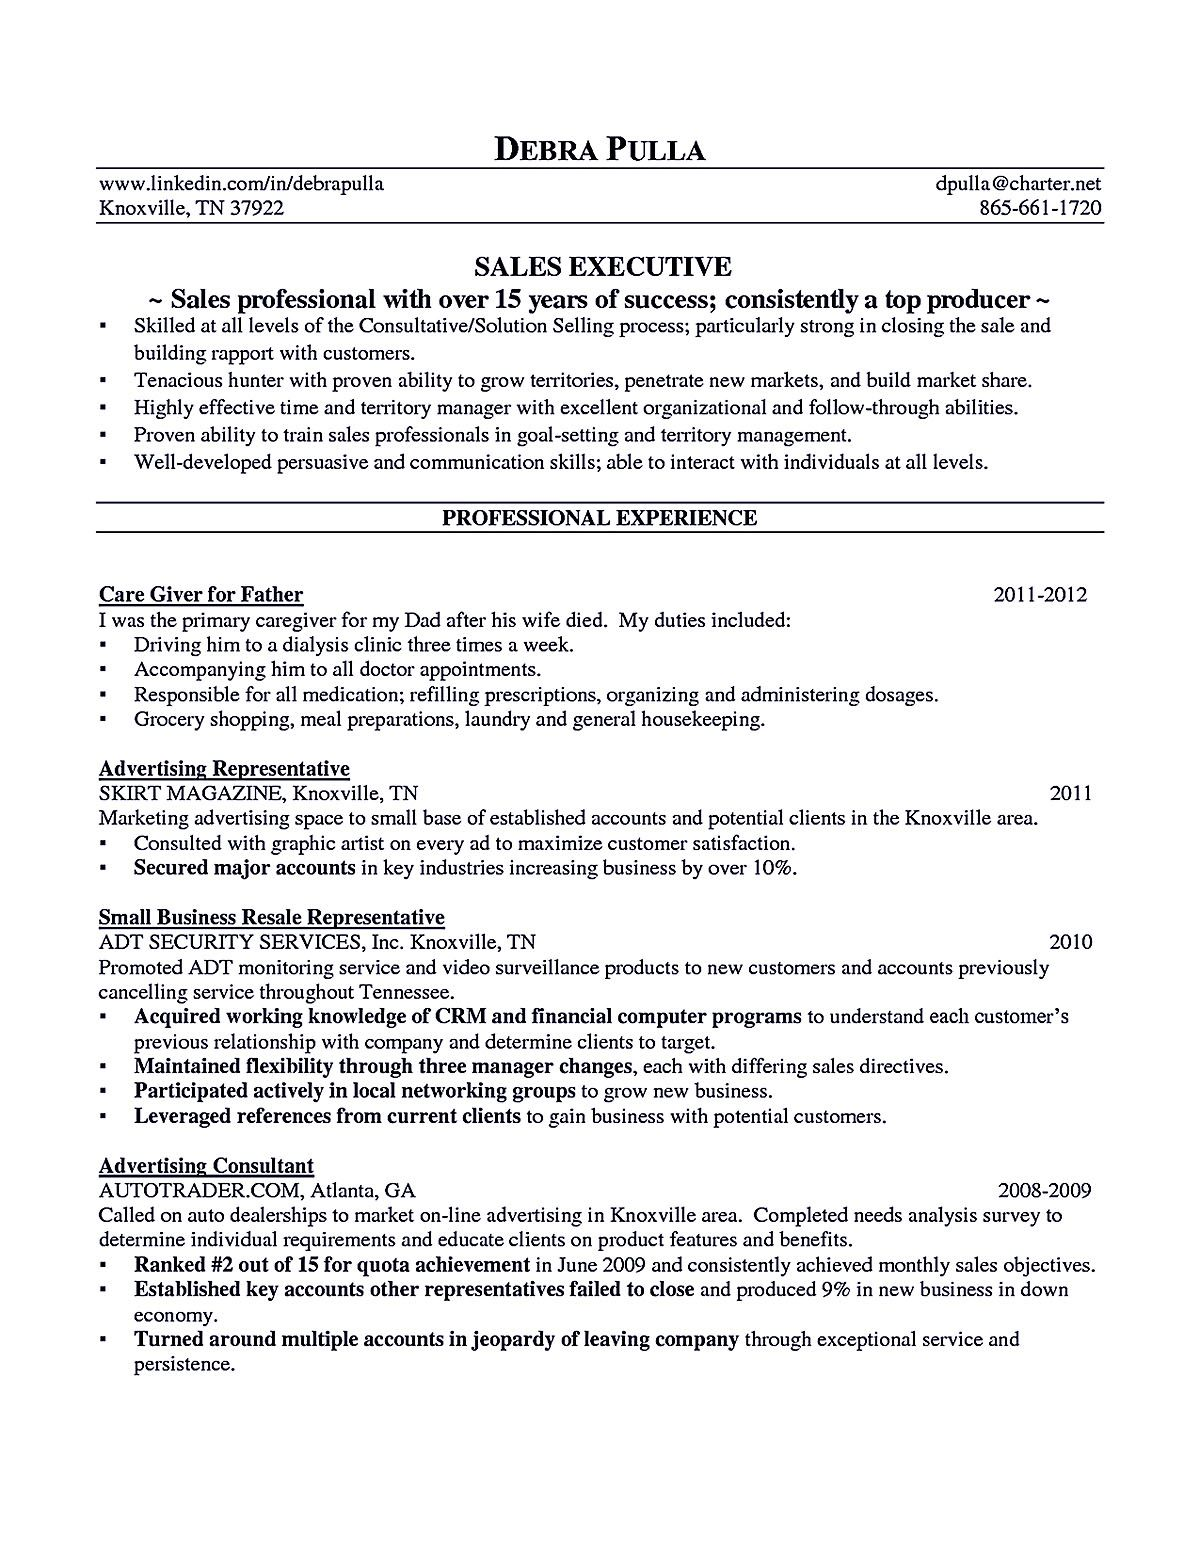 Account Executive Resume Is Like Your Weapon To Get The Job